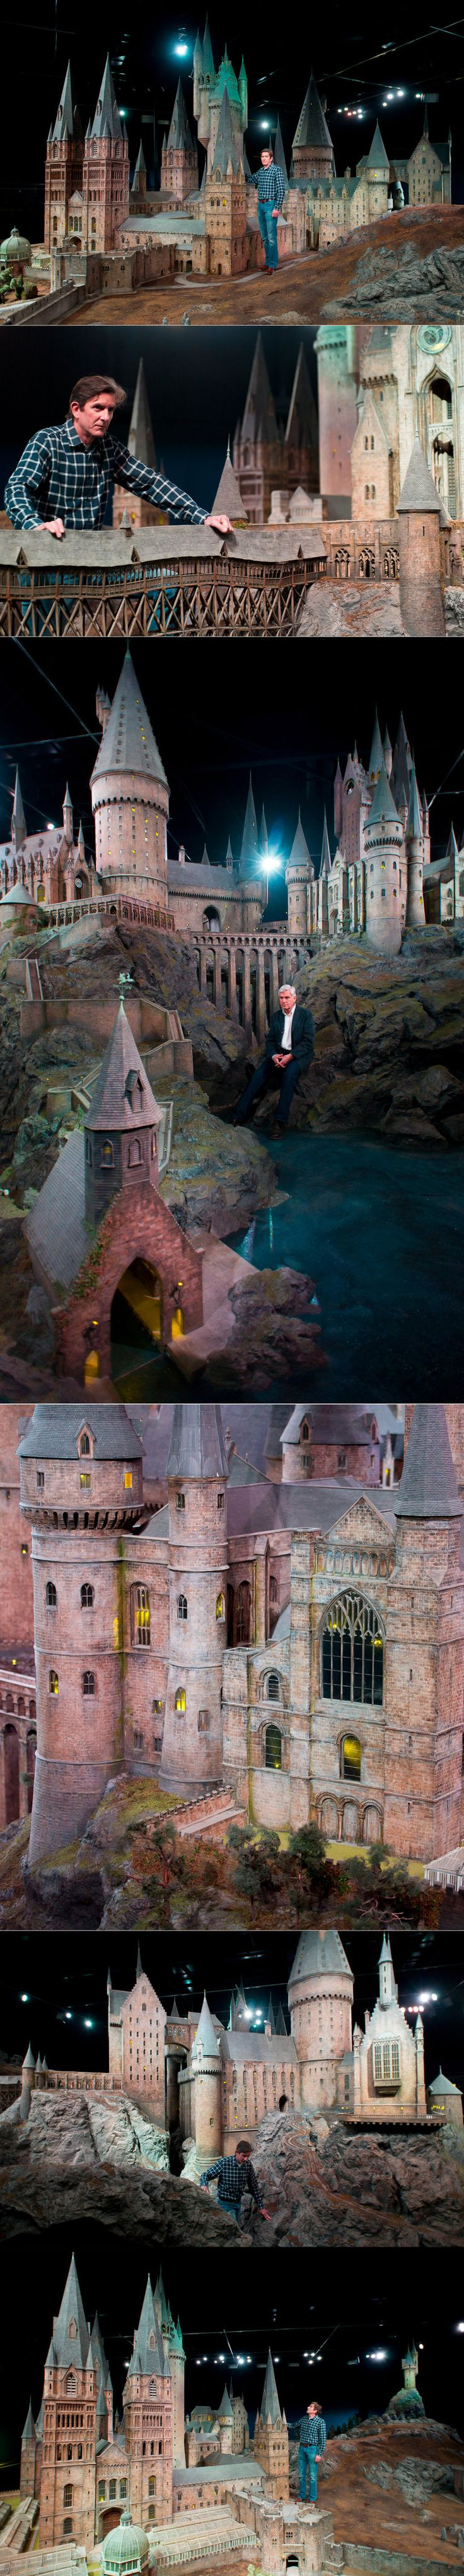 "Hogwarts Scale Model - ""Jose Granell, model supervisor, unveils a model of Hogwarts castle at the Warner Bros Studio Tour, in Watford, London, on March 1, 2012. The Hogwarts castle model was built for the first film ""Harry Potter and the Philosopher's Stone"", it was created for aerial photography and was digitally scanned for CGI scenes. It took 86 artists and crew members to construct, it measures over 50 feet in diameter and has over 2,500 fiber optic lights. (AP Photo/Jonathan Short)"""